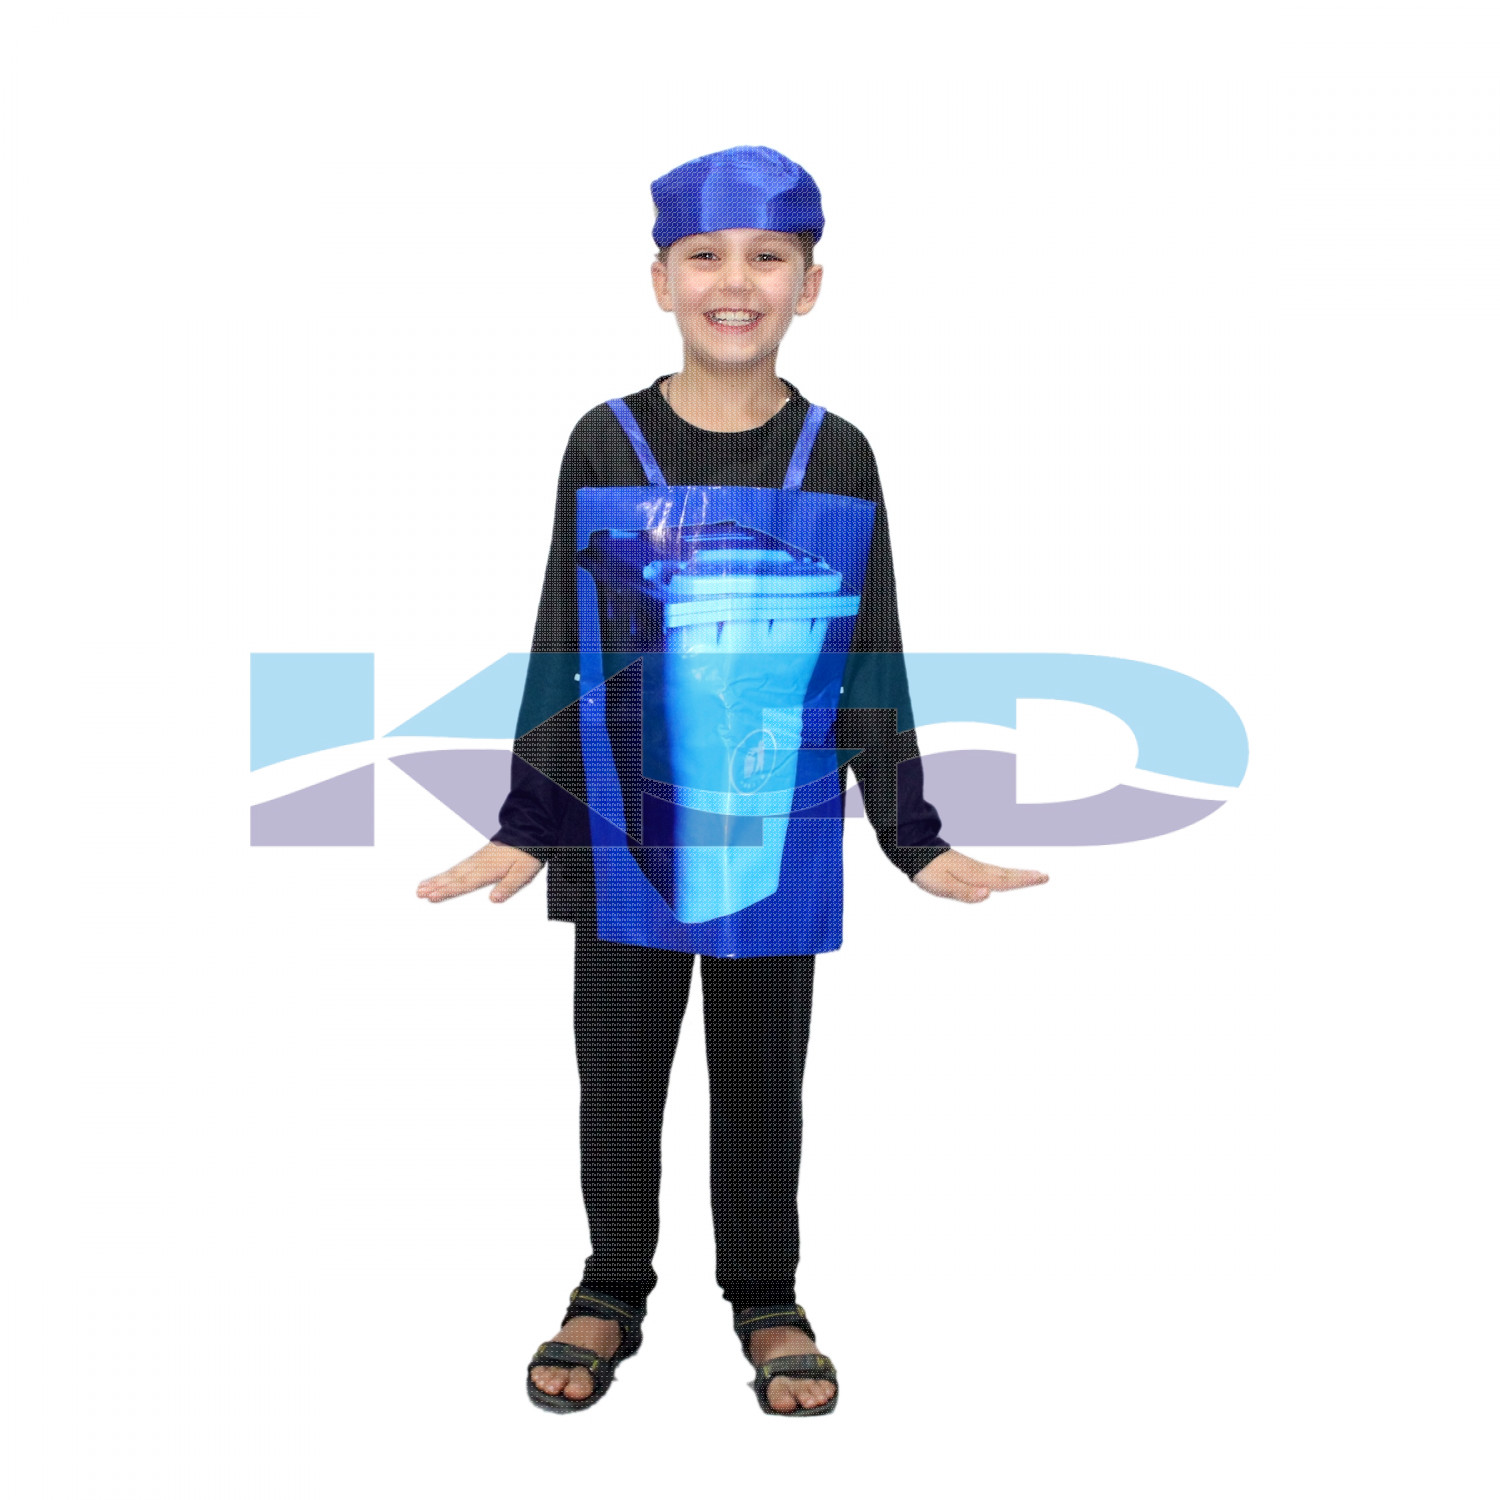 Dustbin Costume For Kids/Social Message Hygiene Costume/Cosplay Costume/For Annual function/Theme Party/Competition/Stage Shows/Birthday Party Dress